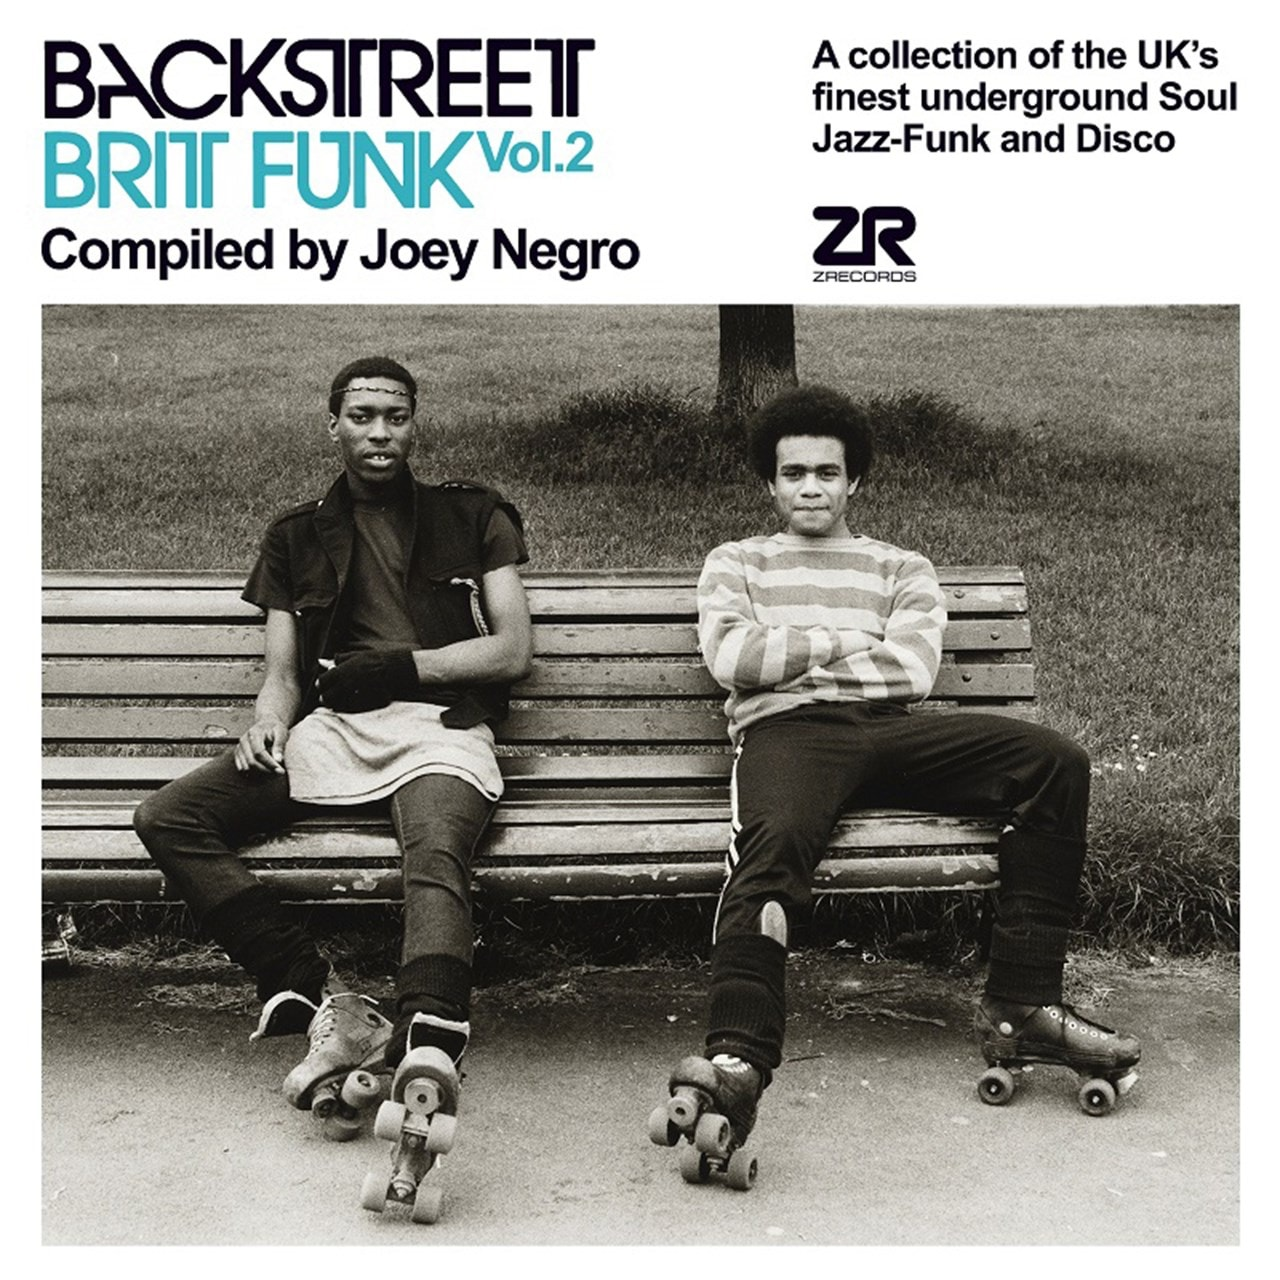 Backstreet Brit Funk: Compiled By Joey Negro - Volume 2 - 2